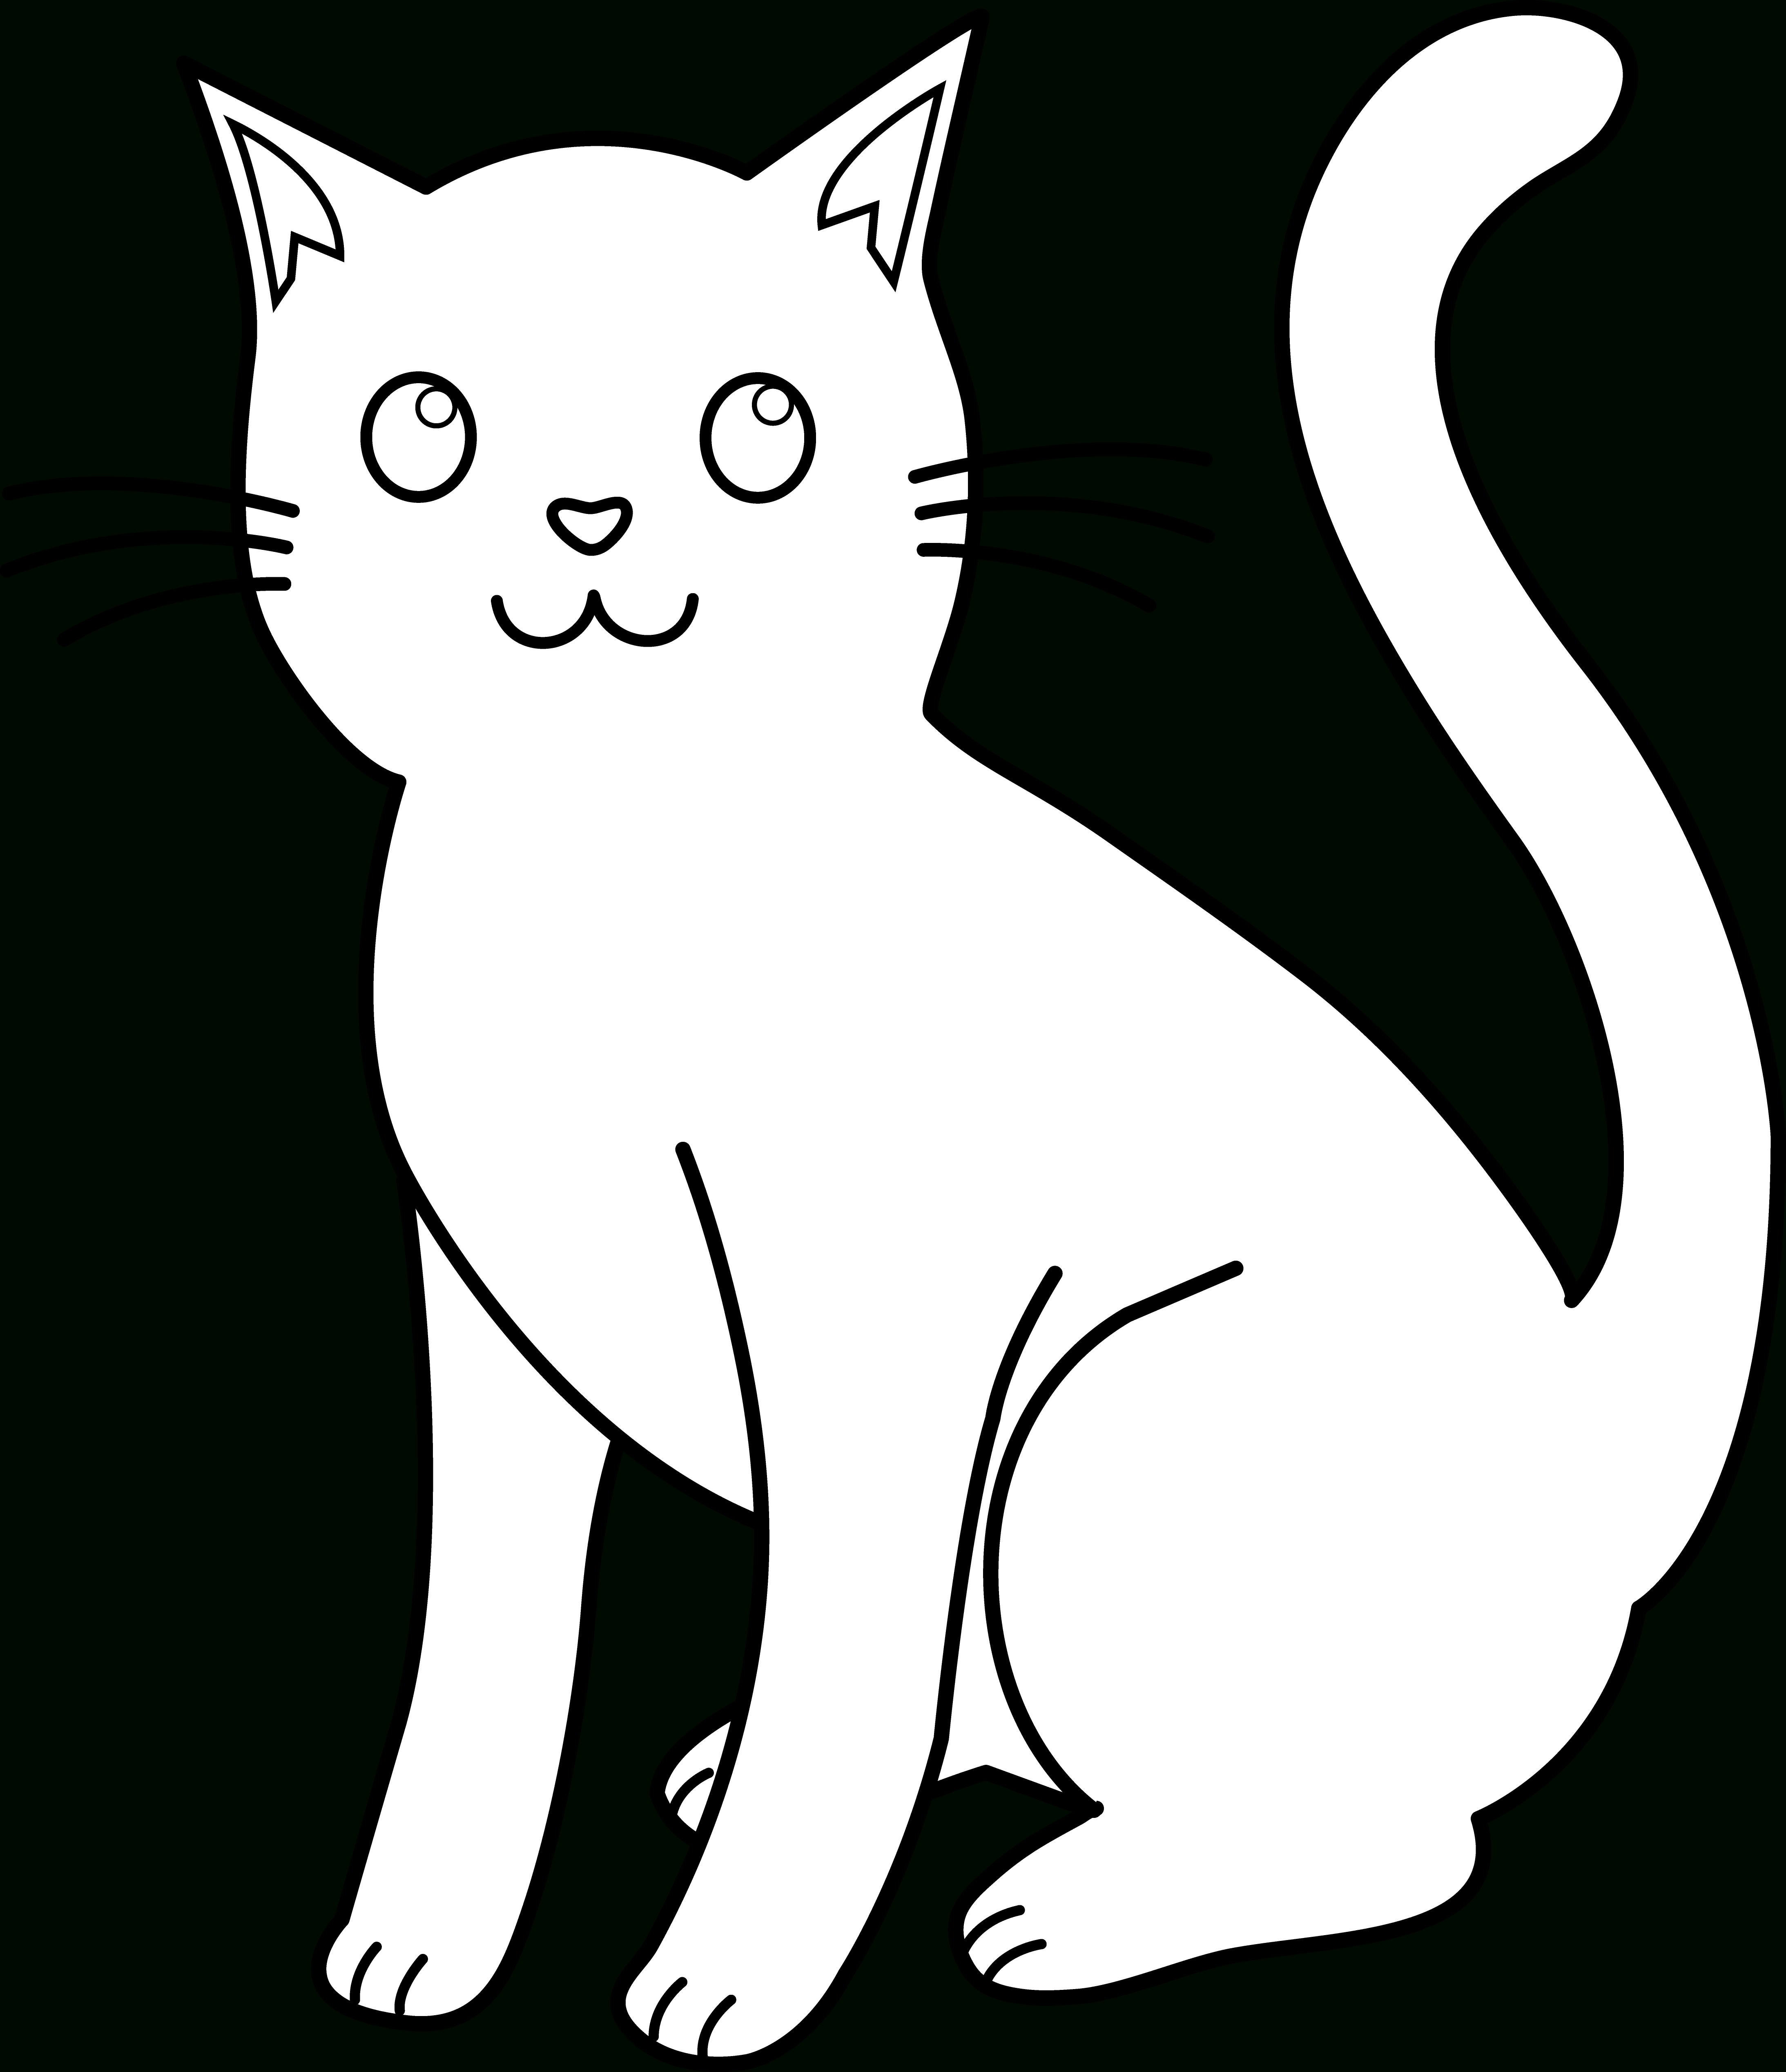 Cat Drawing Outline at GetDrawings.com | Free for personal use Cat ...